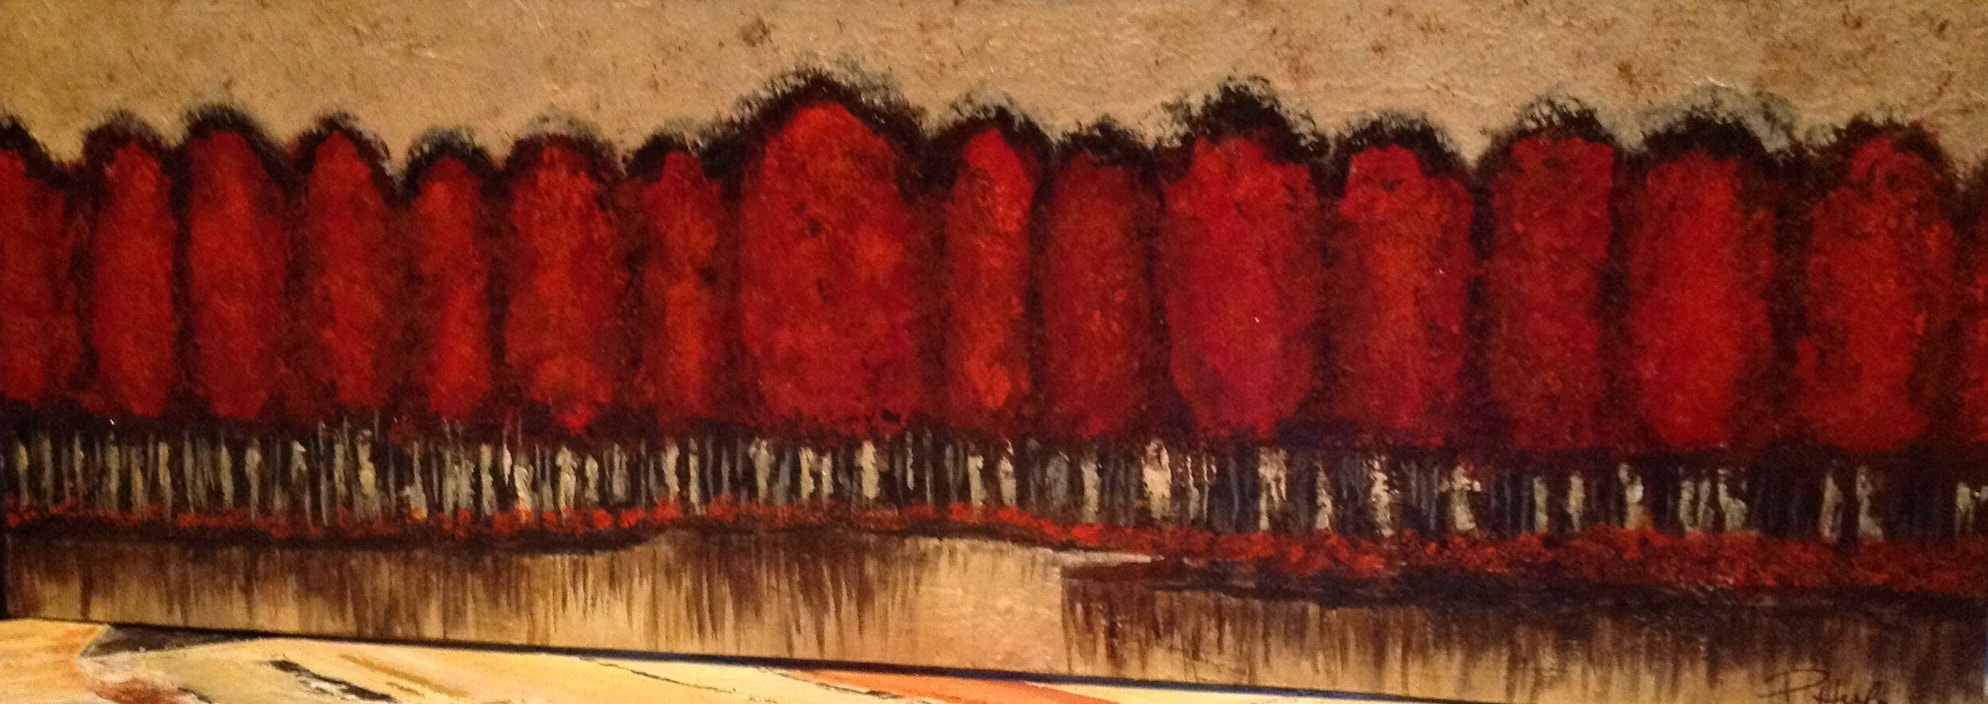 NATURES SELECTION       Acrylic on Canvas               16 x 36